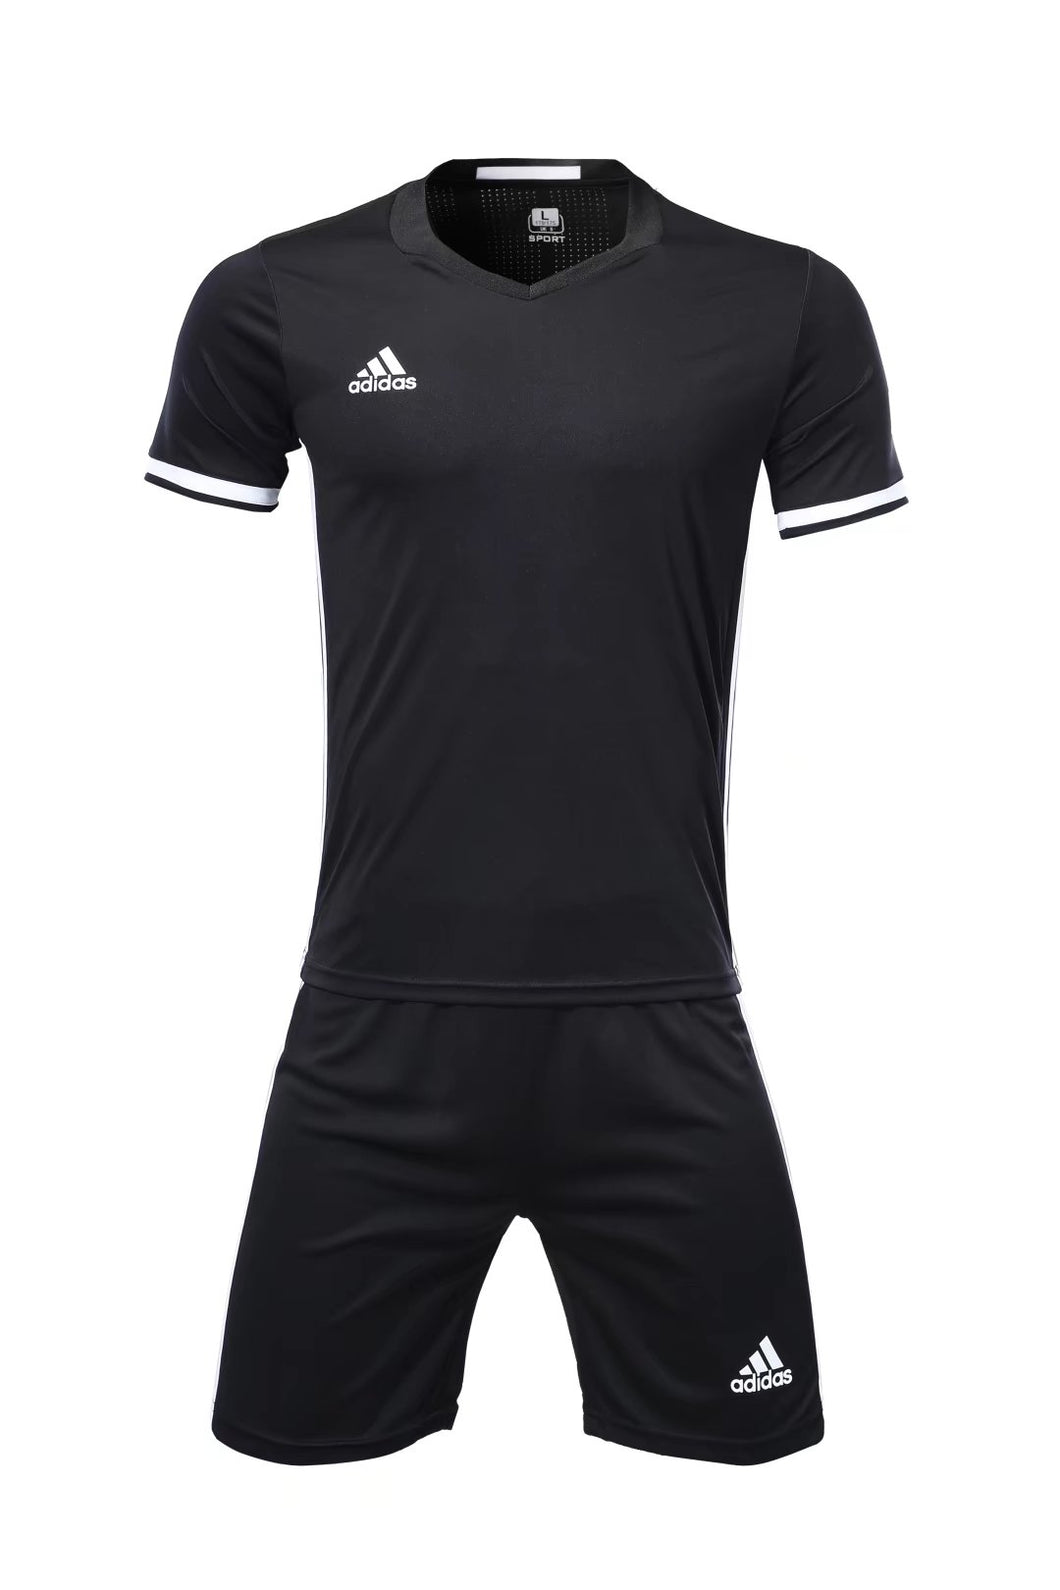 Adidas Full Football Kit Adult Sizes only - Black with 3 stripes.